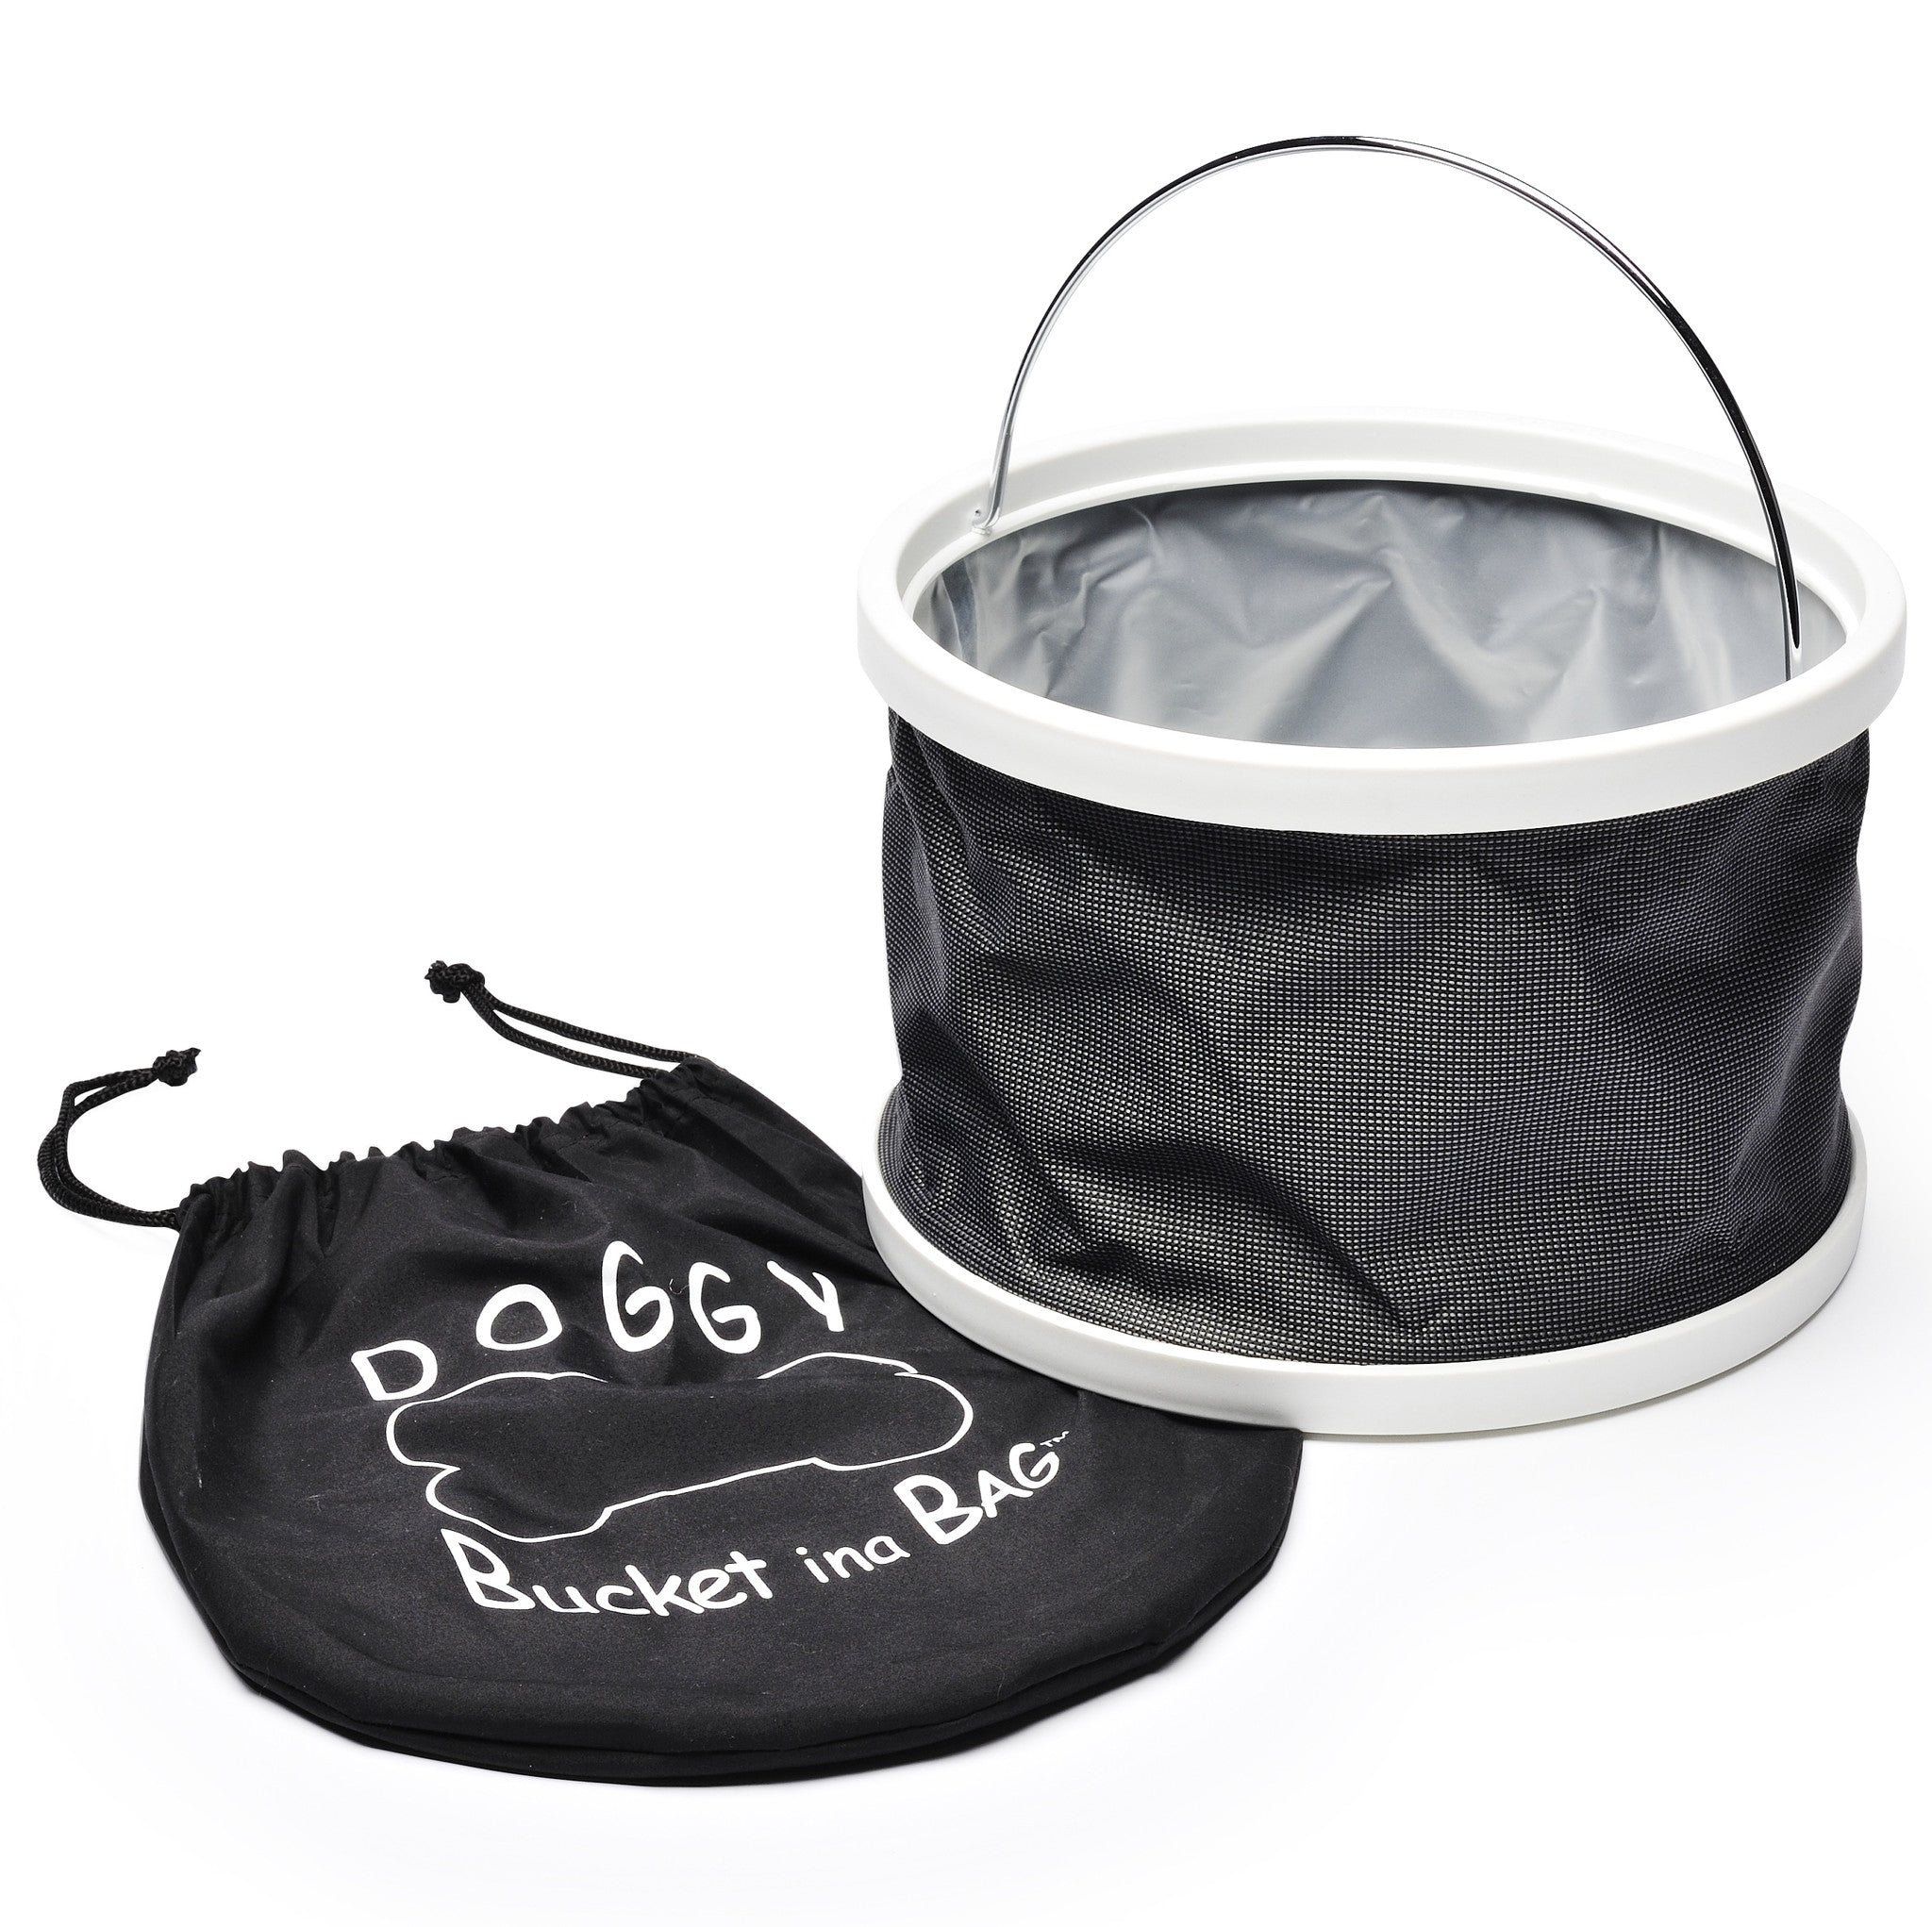 Doggy Bucket Ina Bag - The Potting Shed Garden Tools